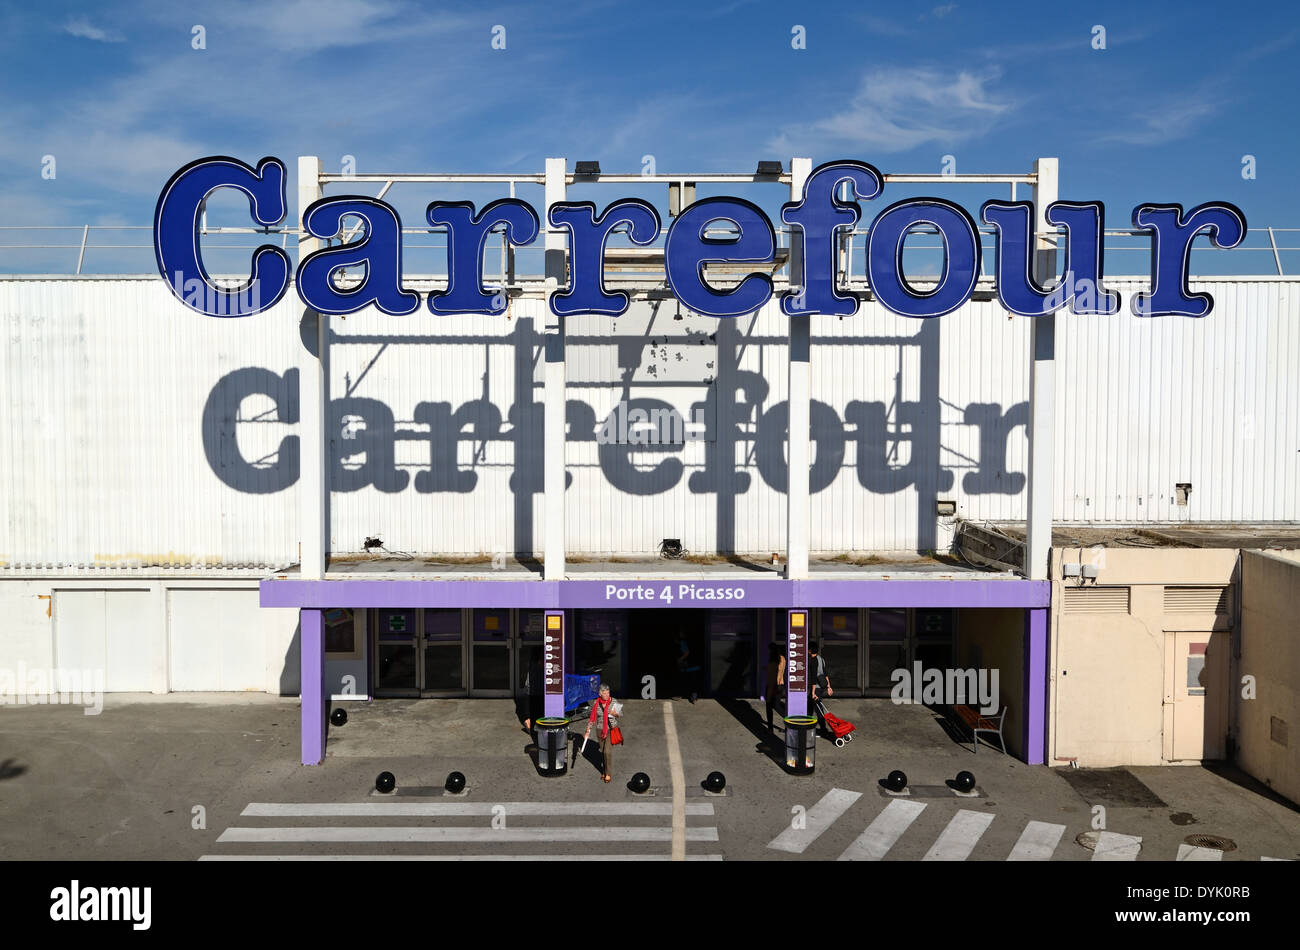 Carrefour Supermarket Les Milles Commercial or Shopping Center or Mall Aix-en-Provence Provence France - Stock Image